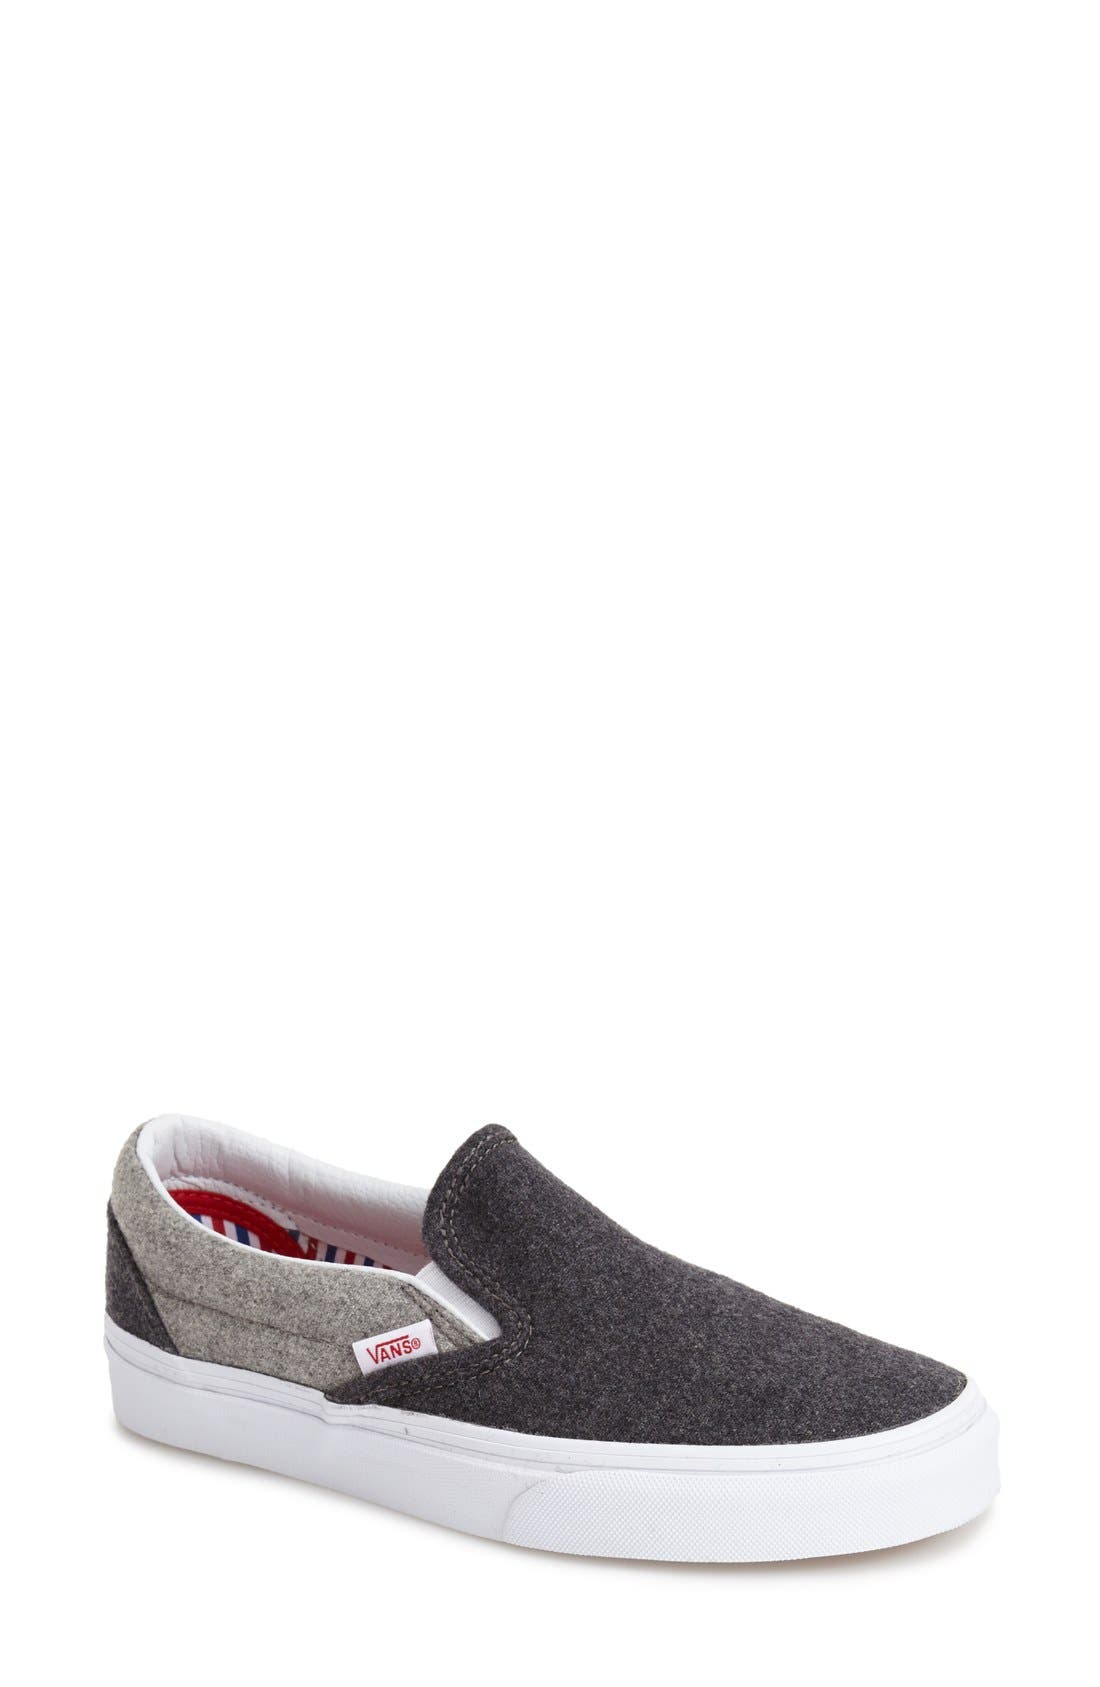 'Classic - Wool' Slip-On Sneaker,                             Main thumbnail 1, color,                             020